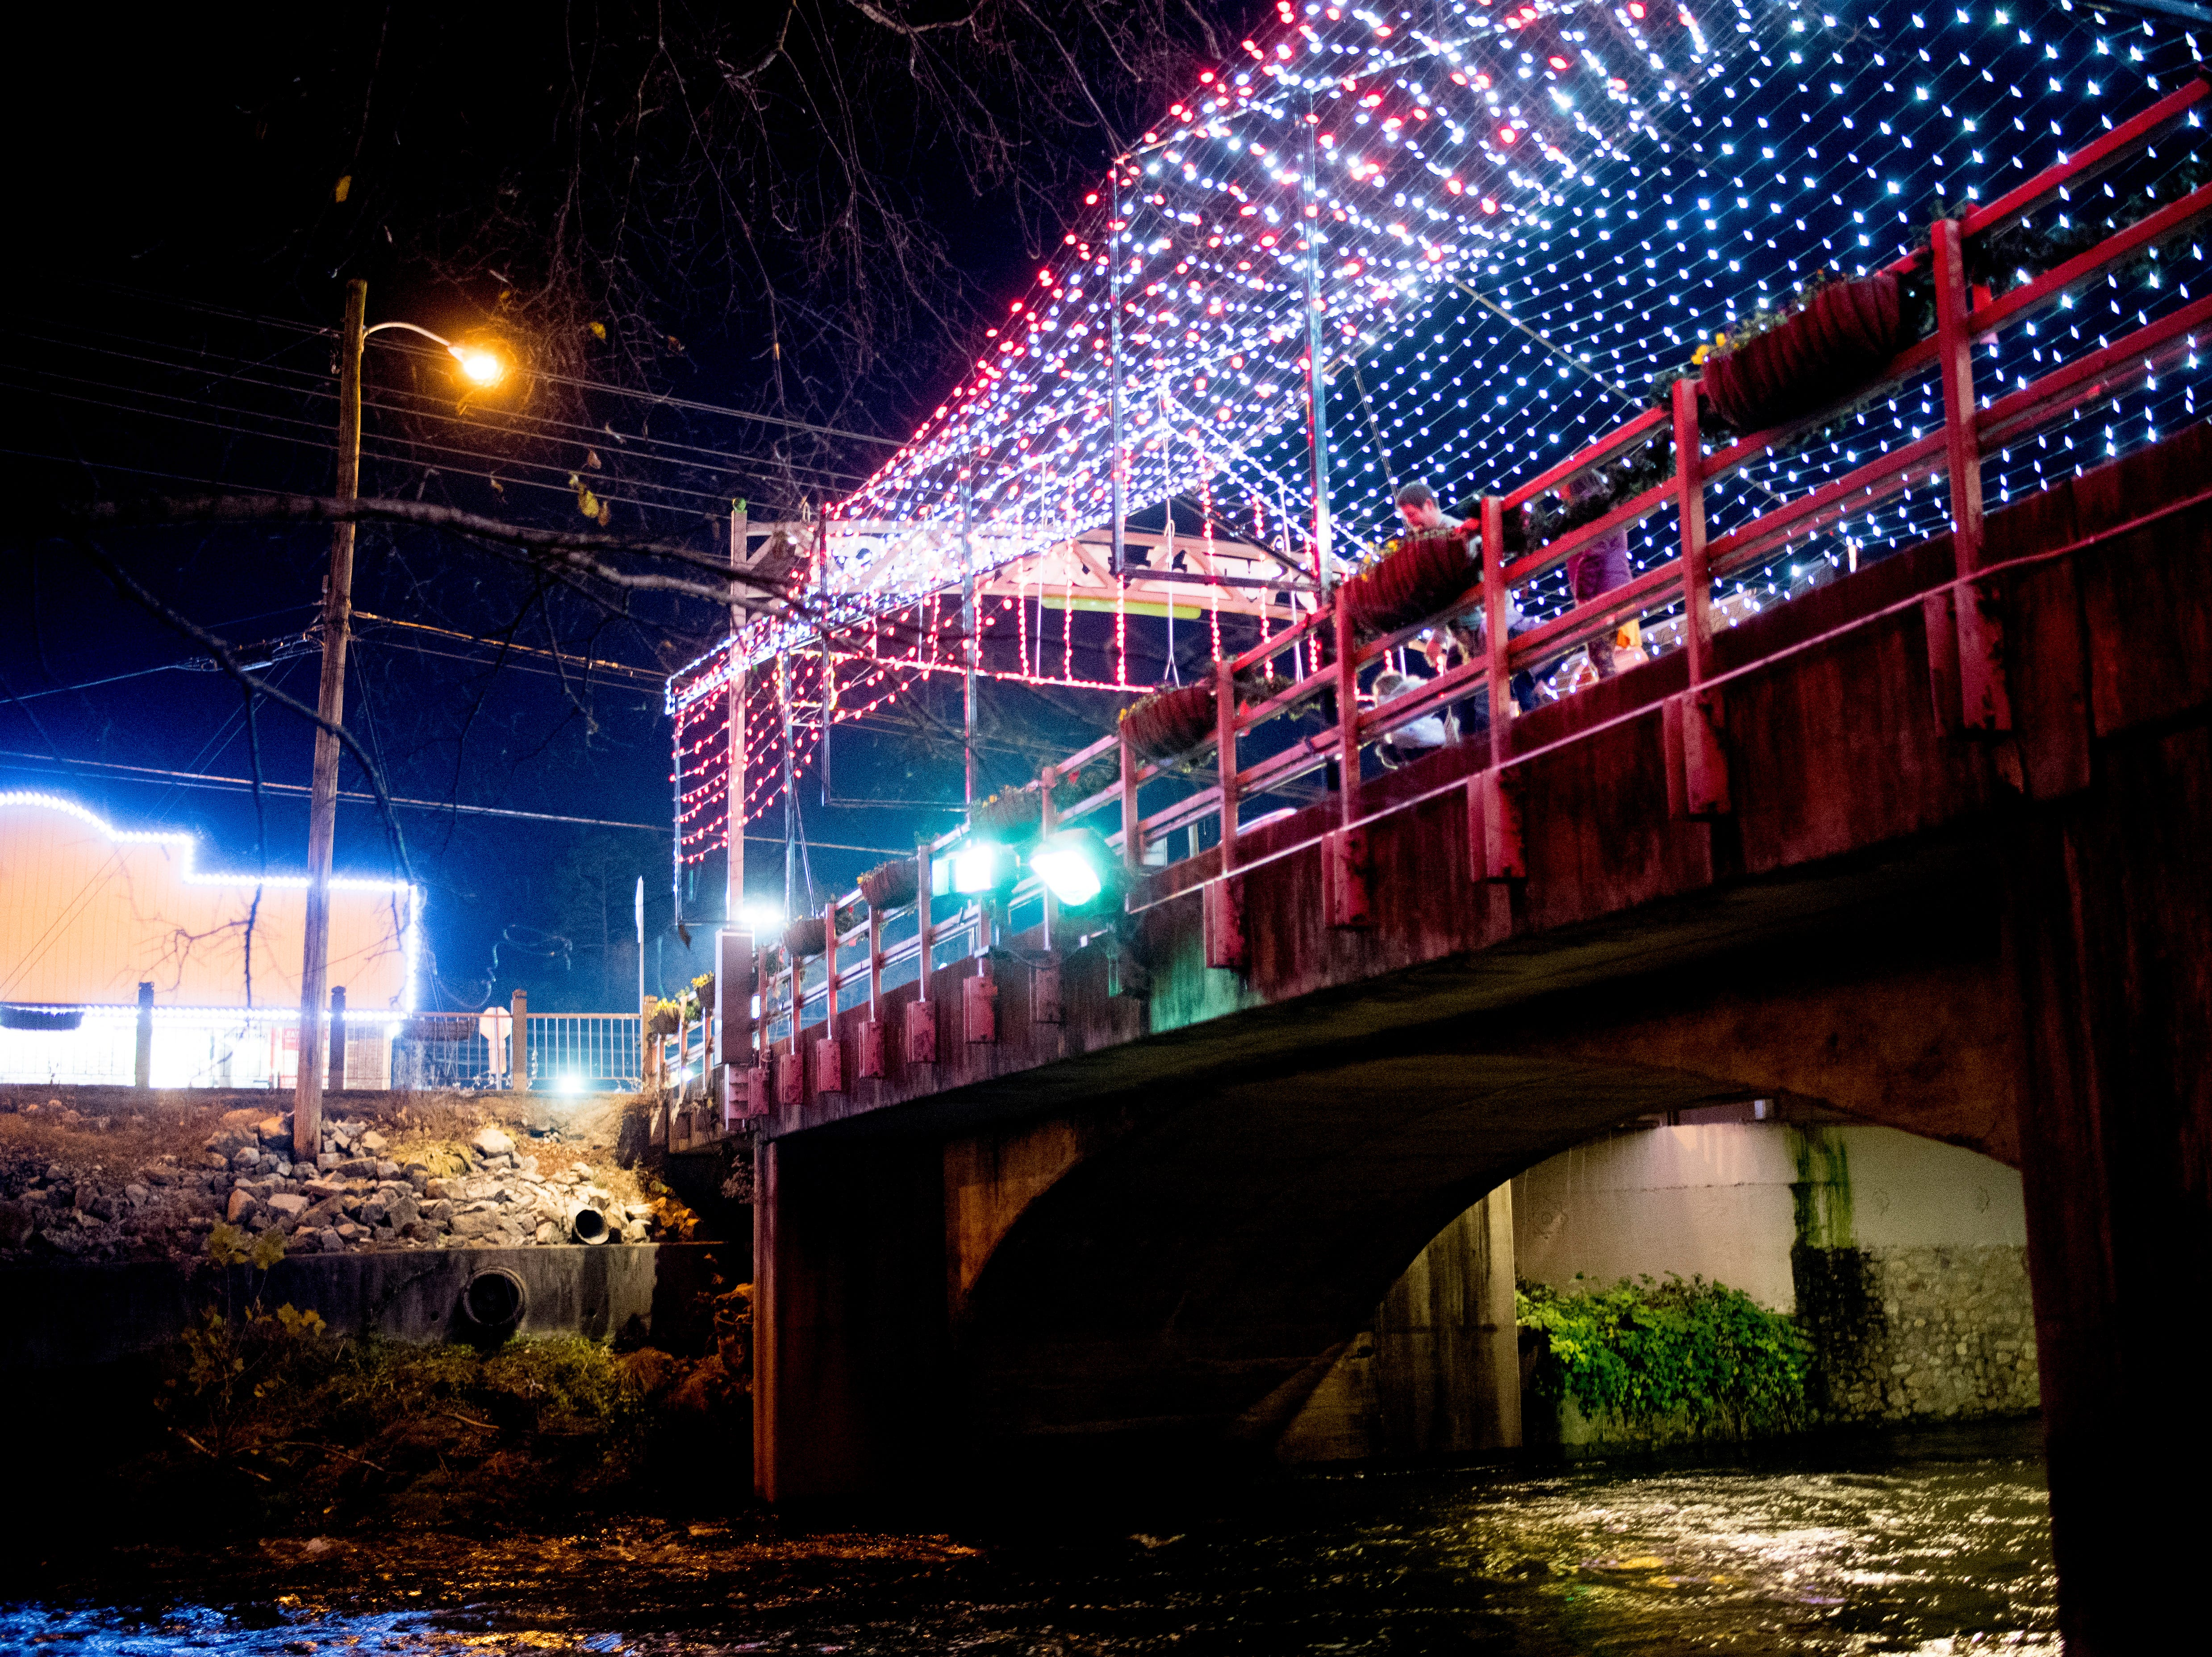 The Old Mill Bridge is covered with lights during the annual Winterfest holiday lights display in Pigeon Forge, Tennessee on Friday, November 16, 2018.